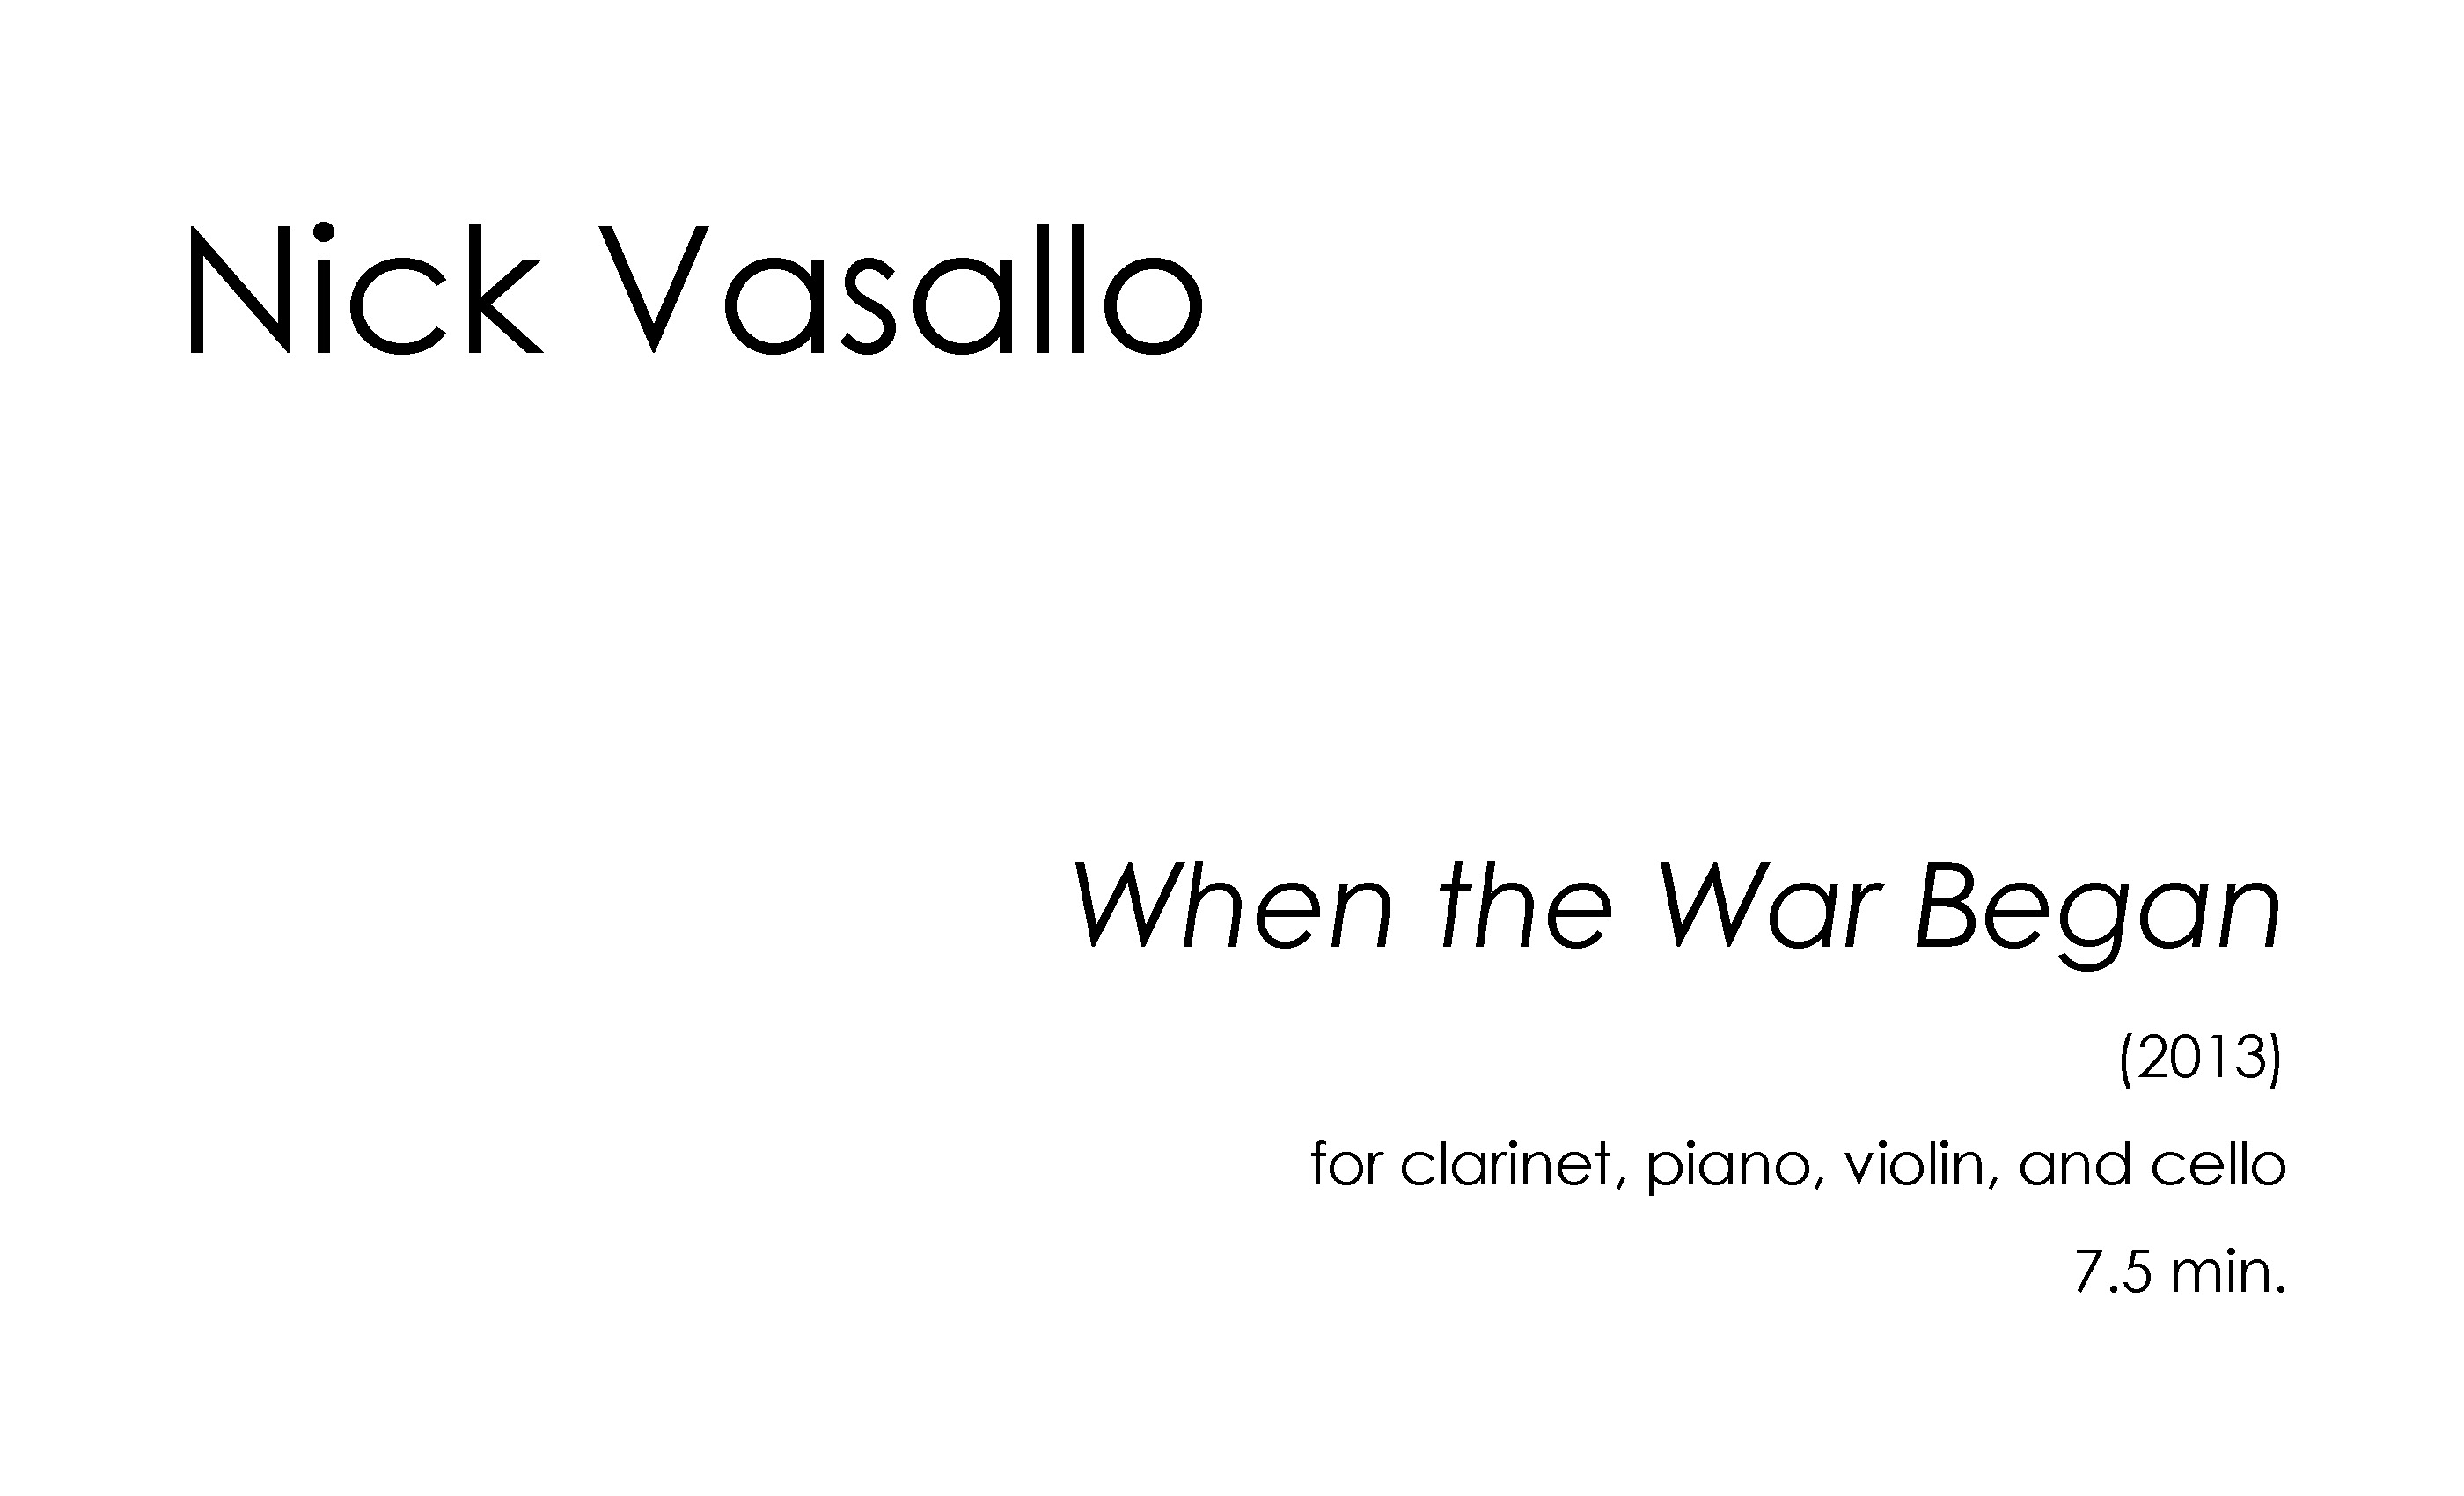 When the War Began (2013) for clarinet, piano, violin, and